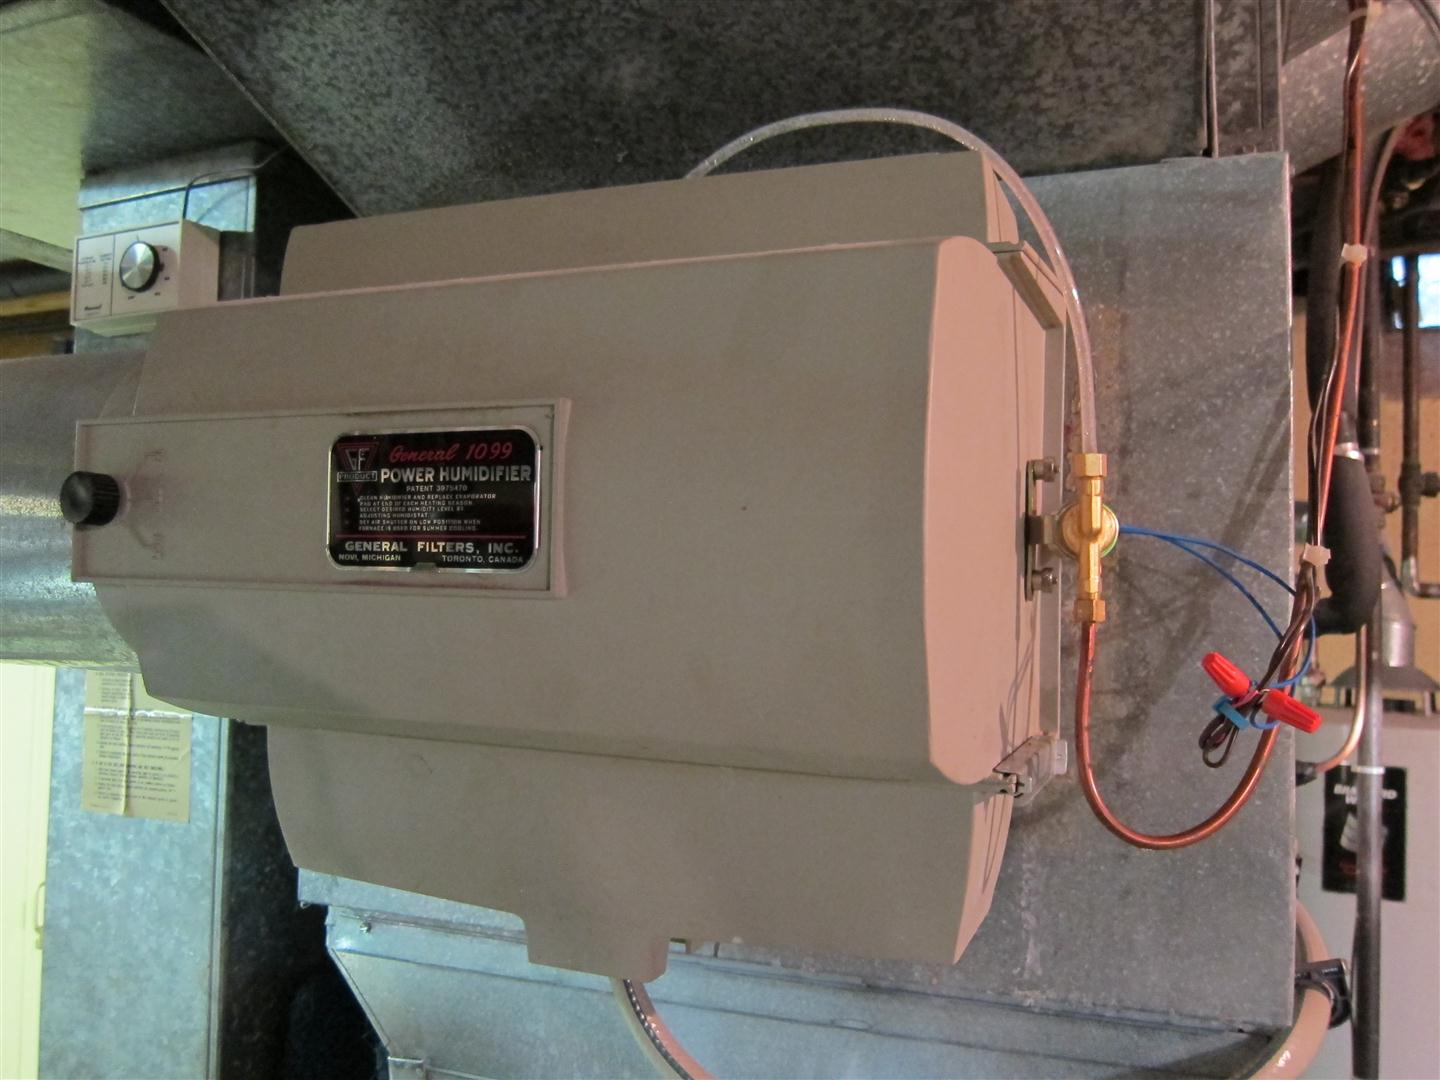 Furnace Humidifier Dui Attorney